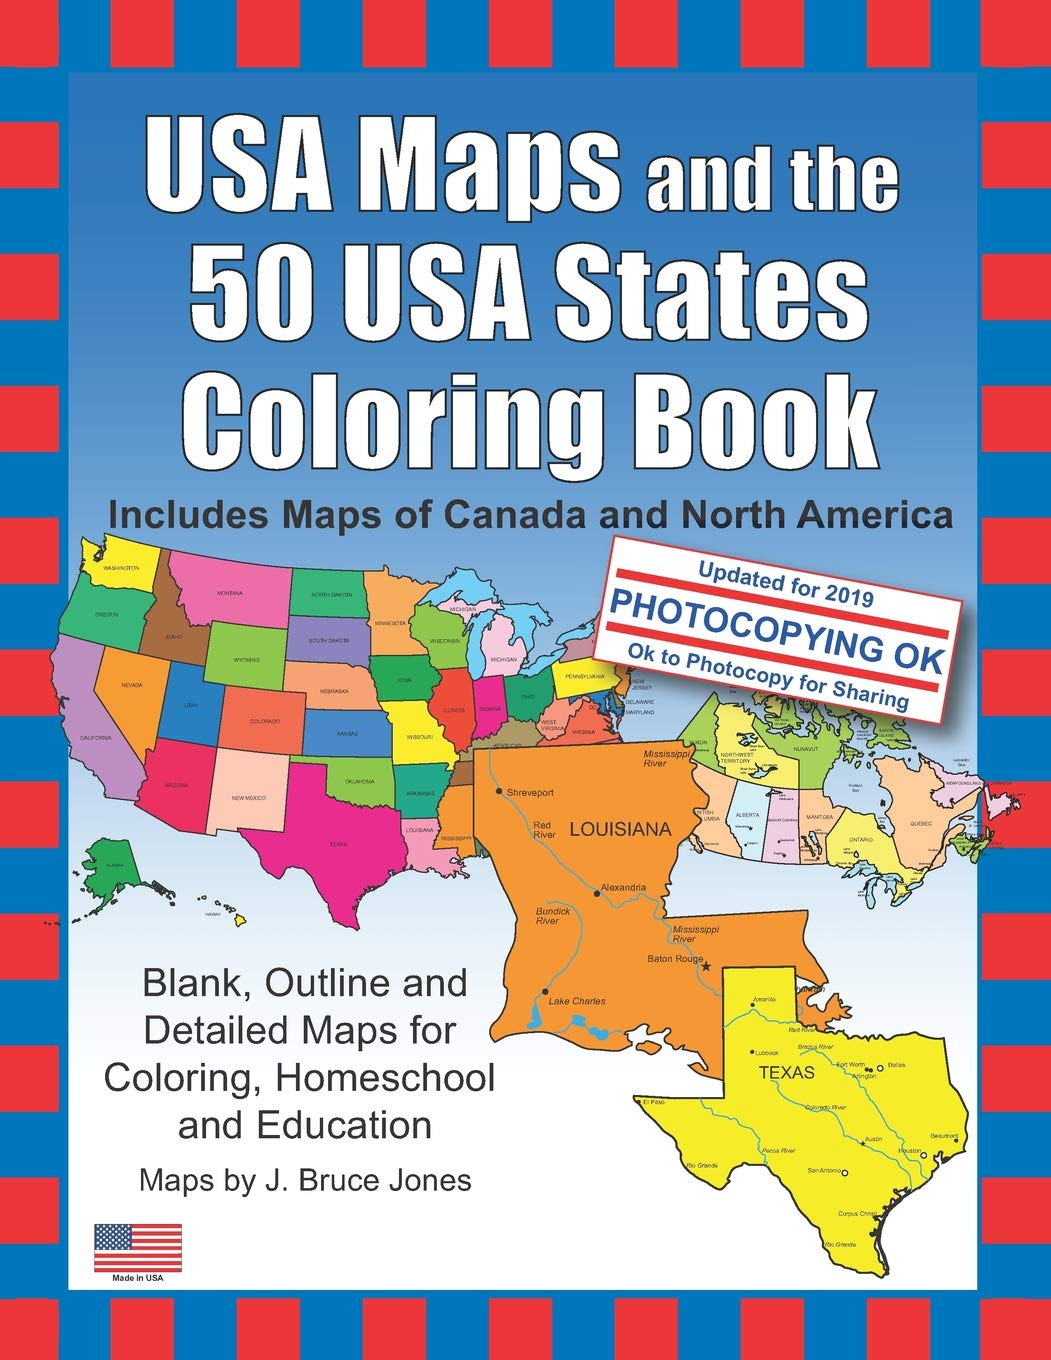 Amazon.com: USA Maps and the 50 USA States Coloring Book ...